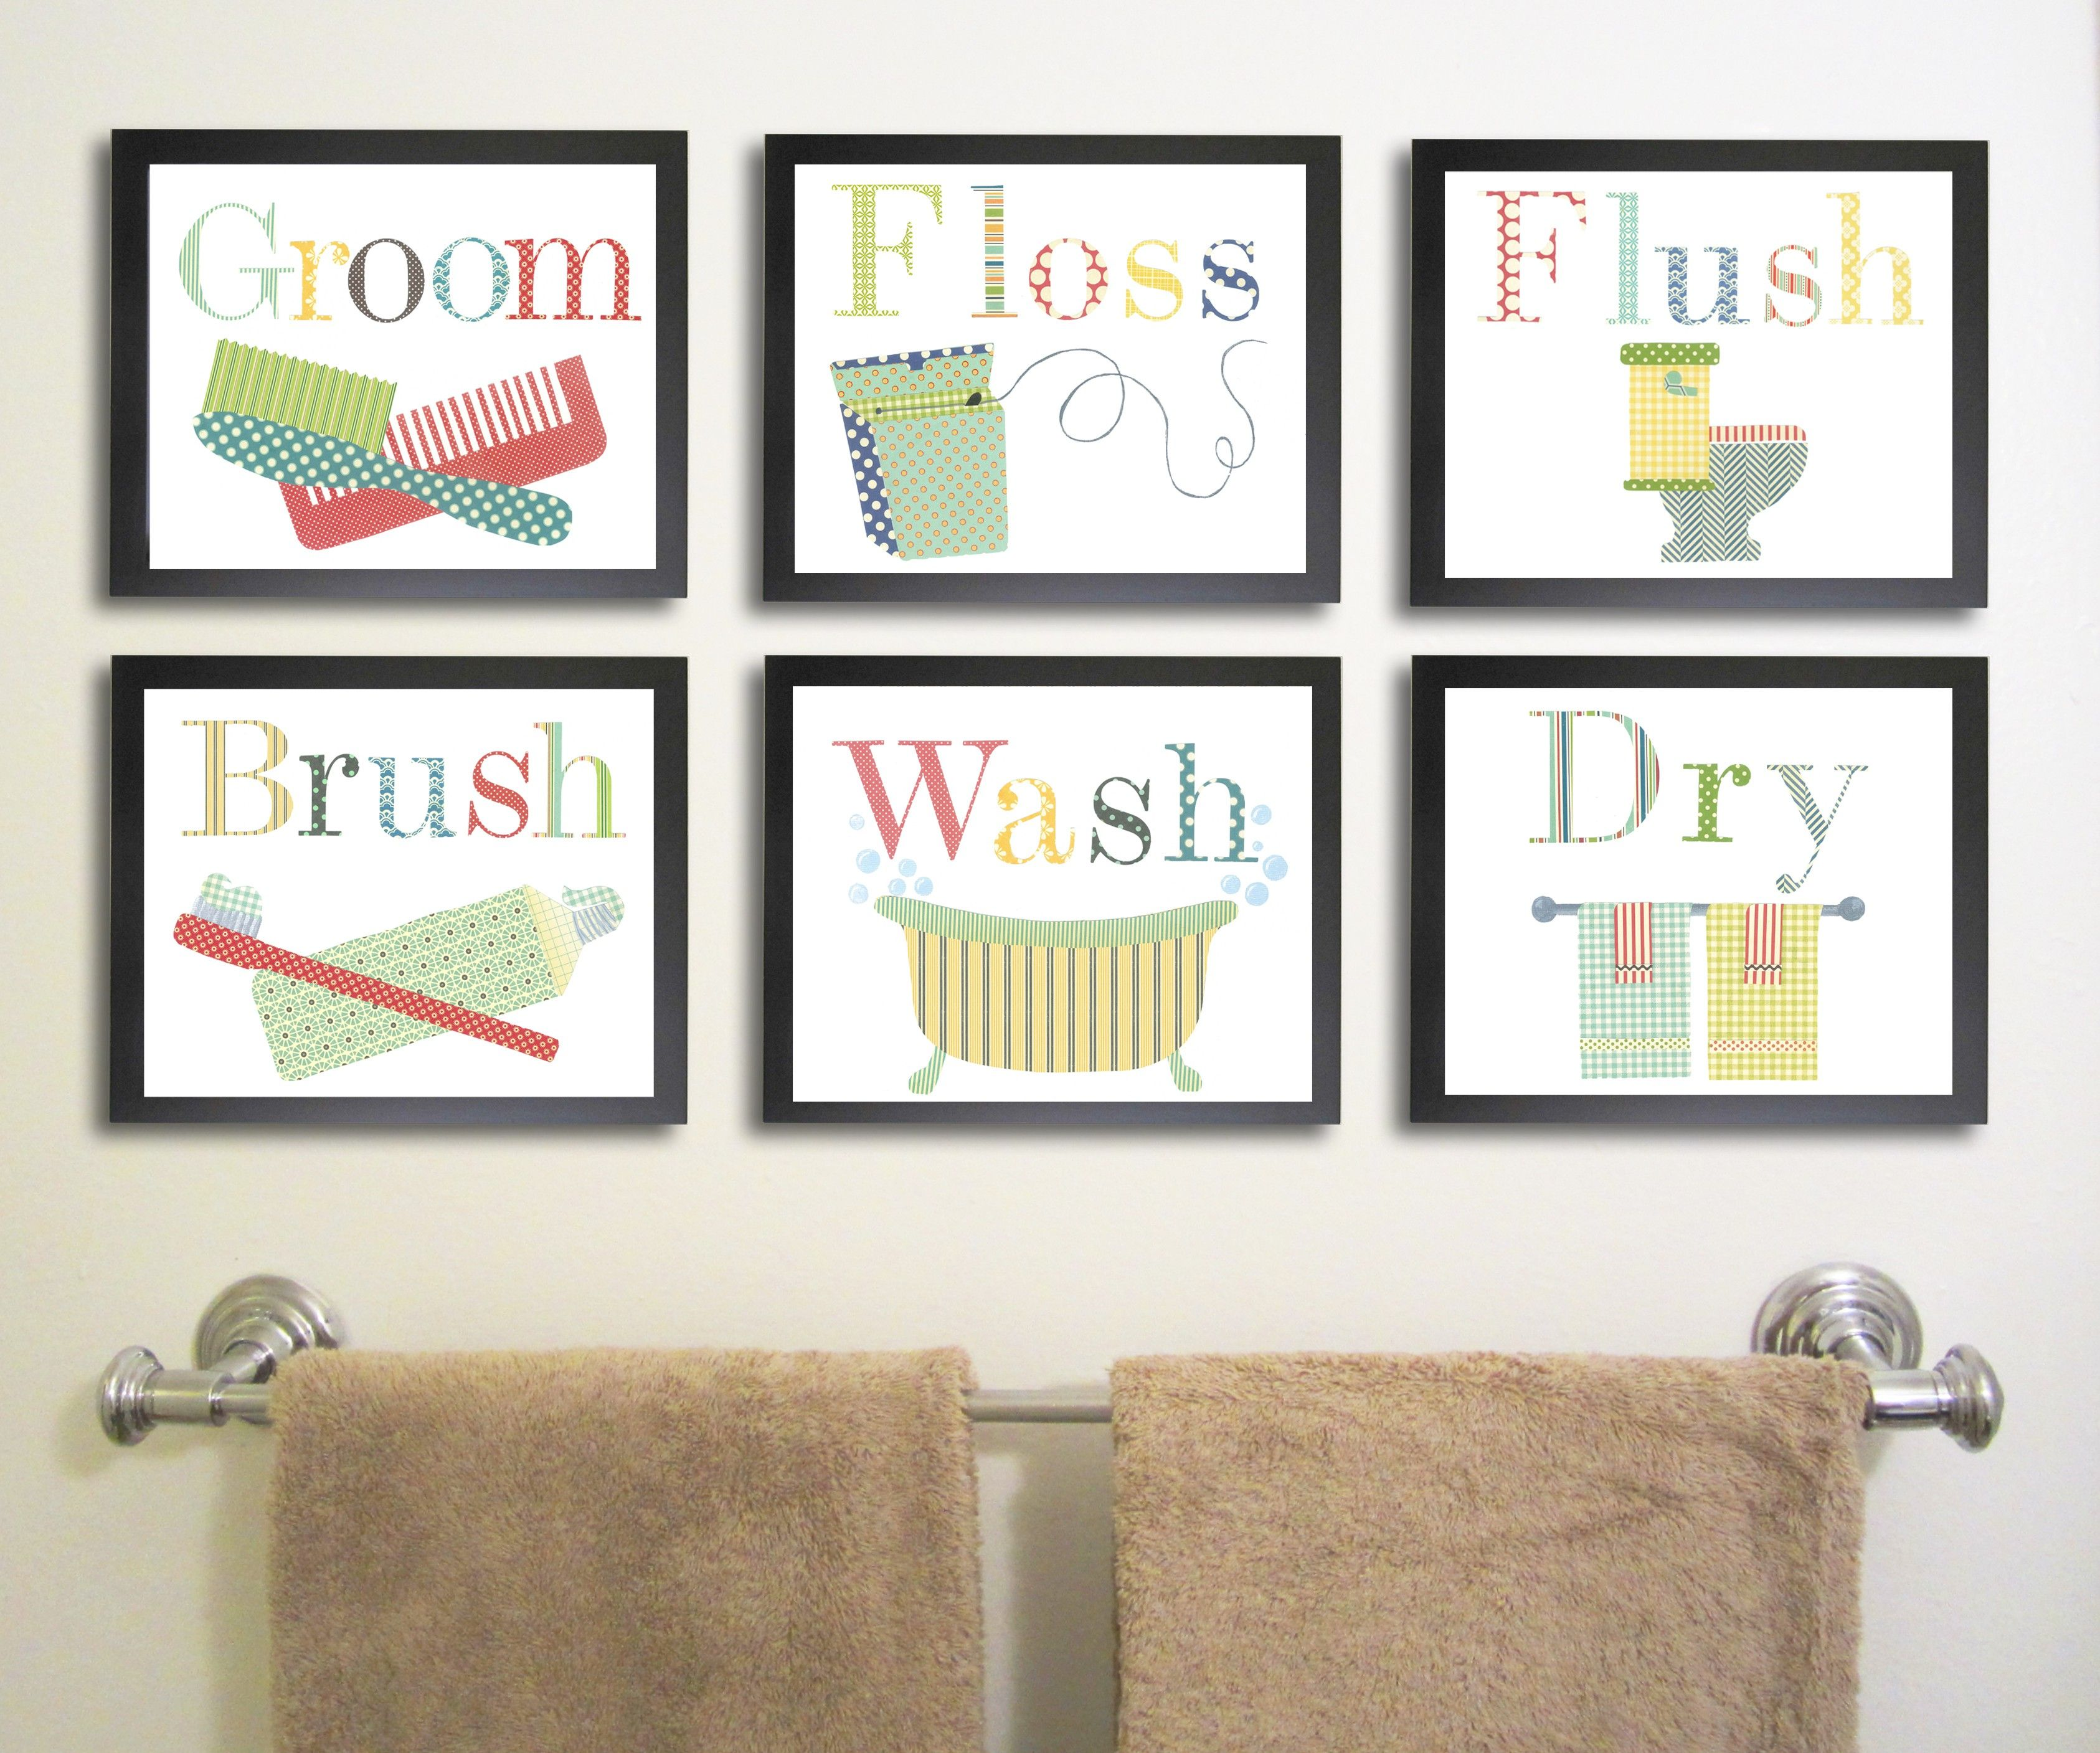 Interior Design For Bathroom Wall Art Ideas Of Nice Picture For Walls Groom Floss H Acnn Decor